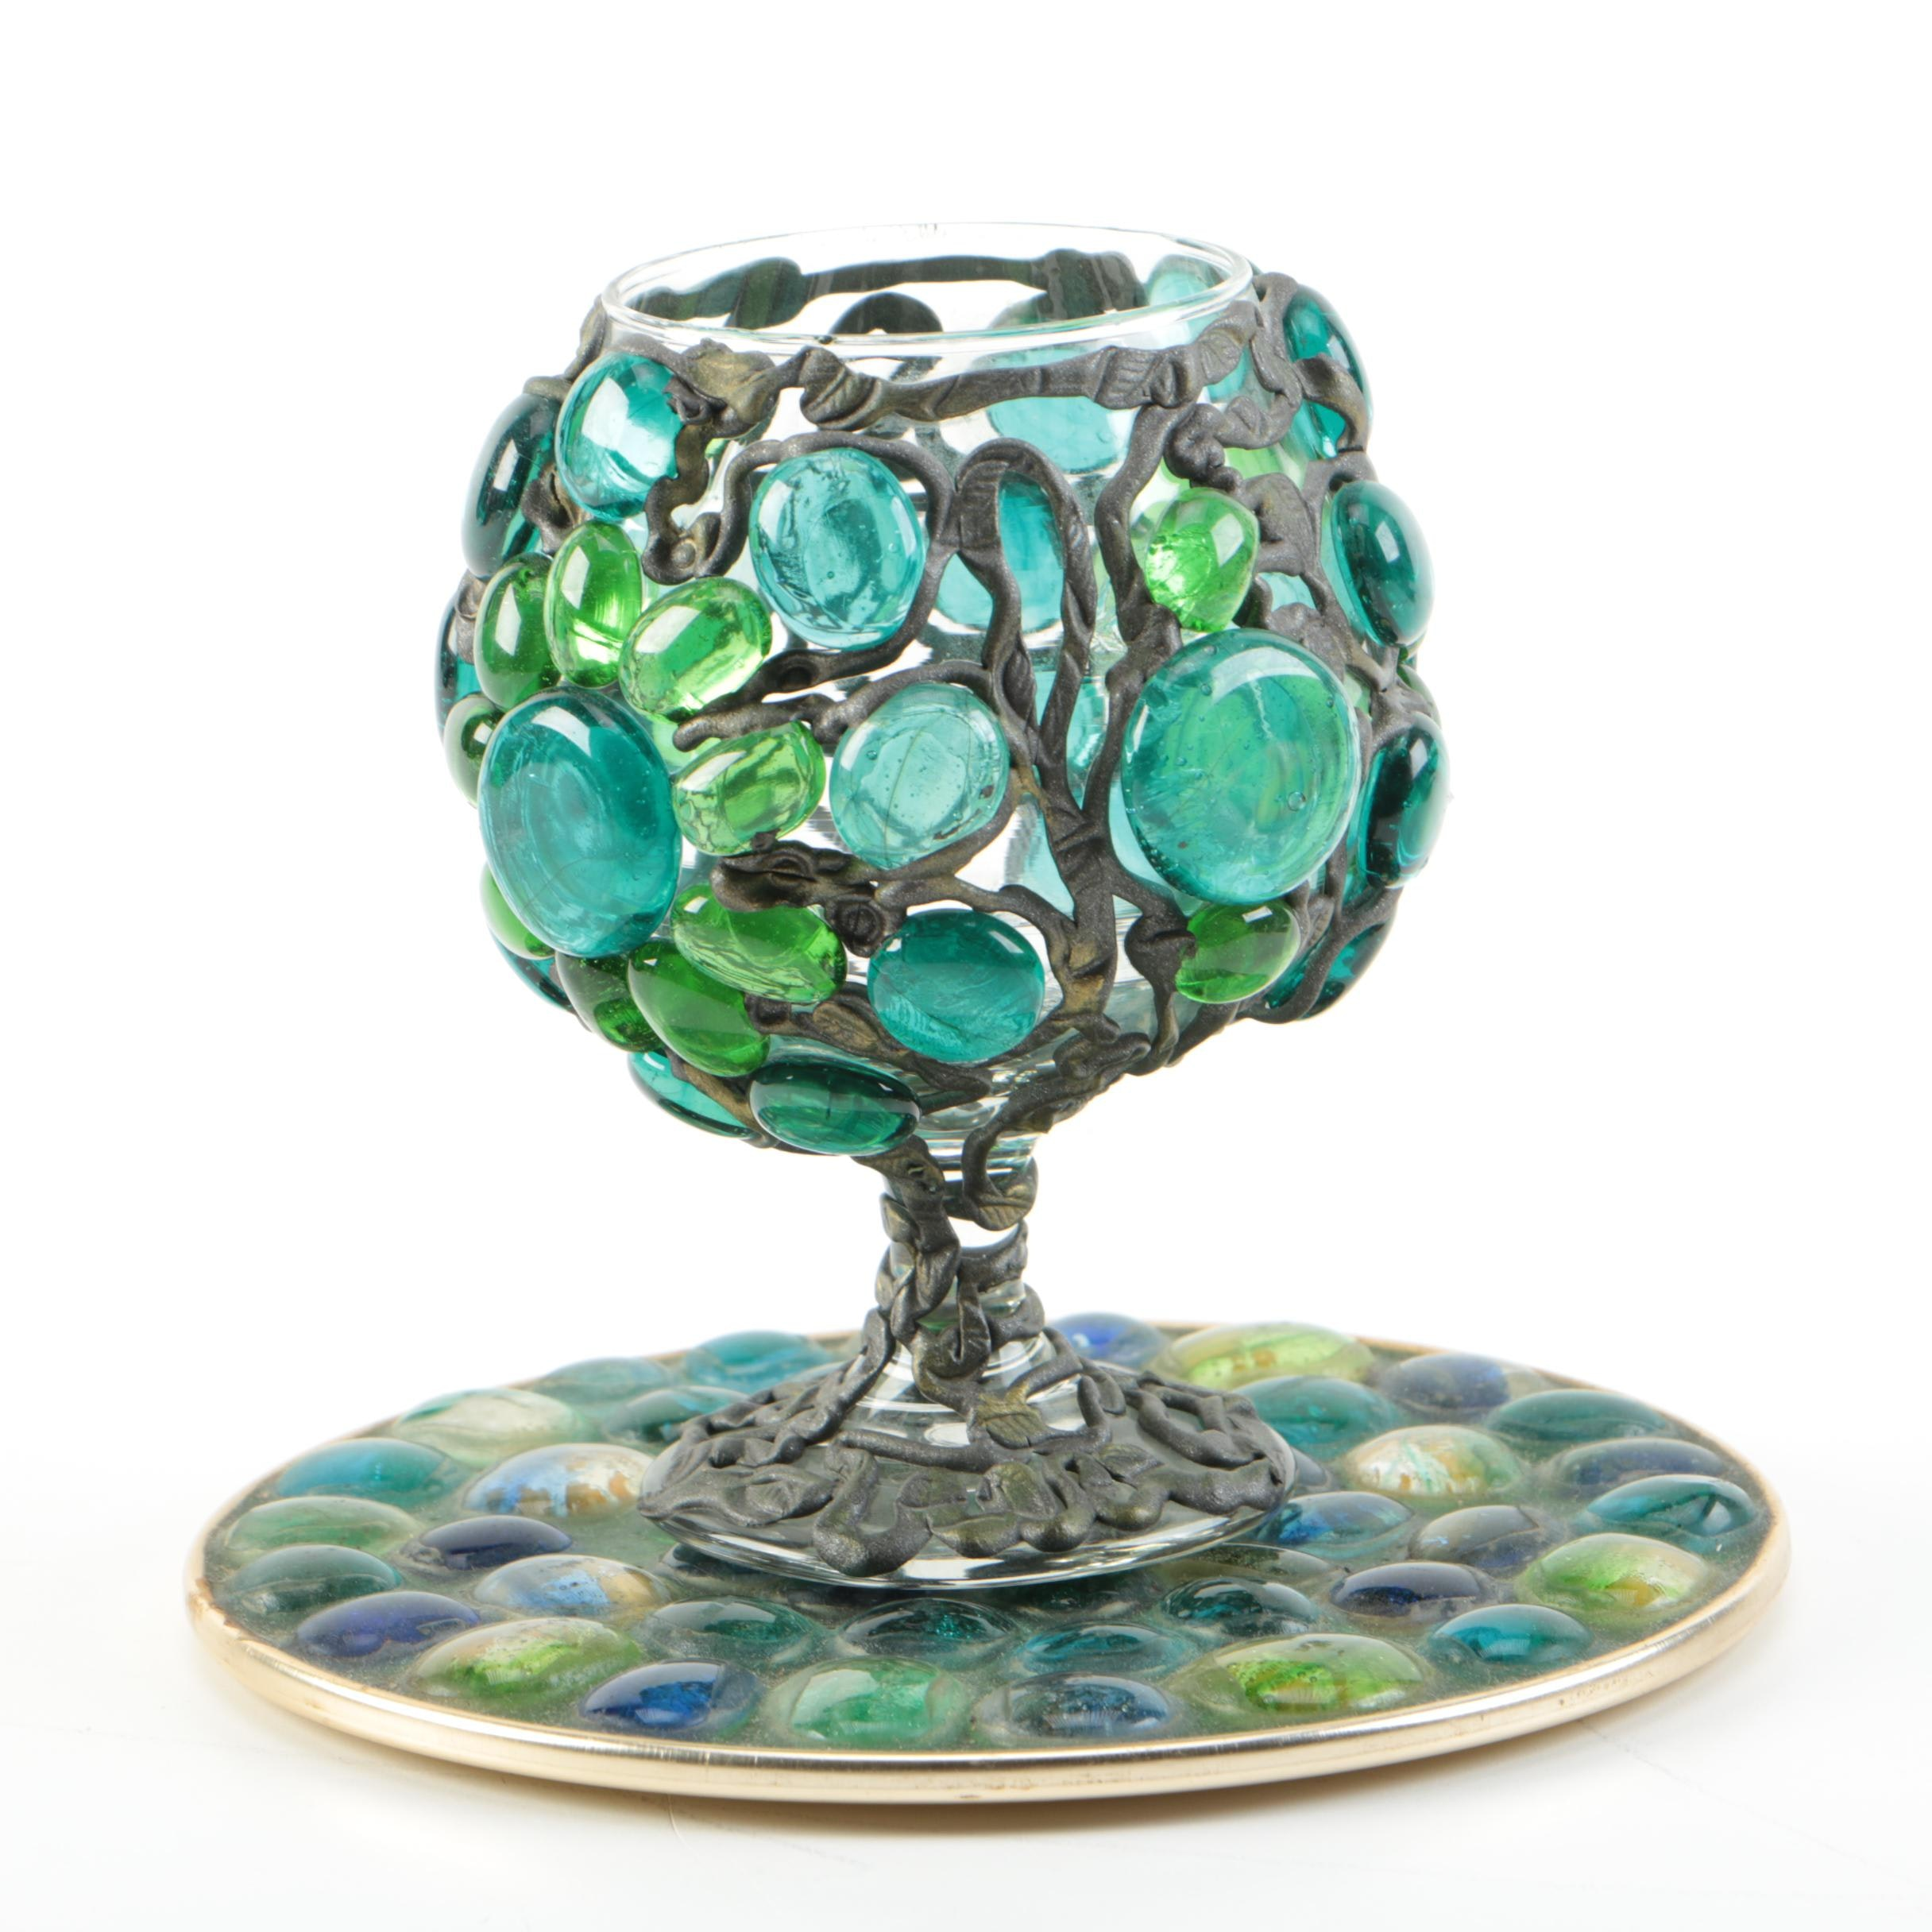 Mosaic Glass Goblet and Decorative Plate